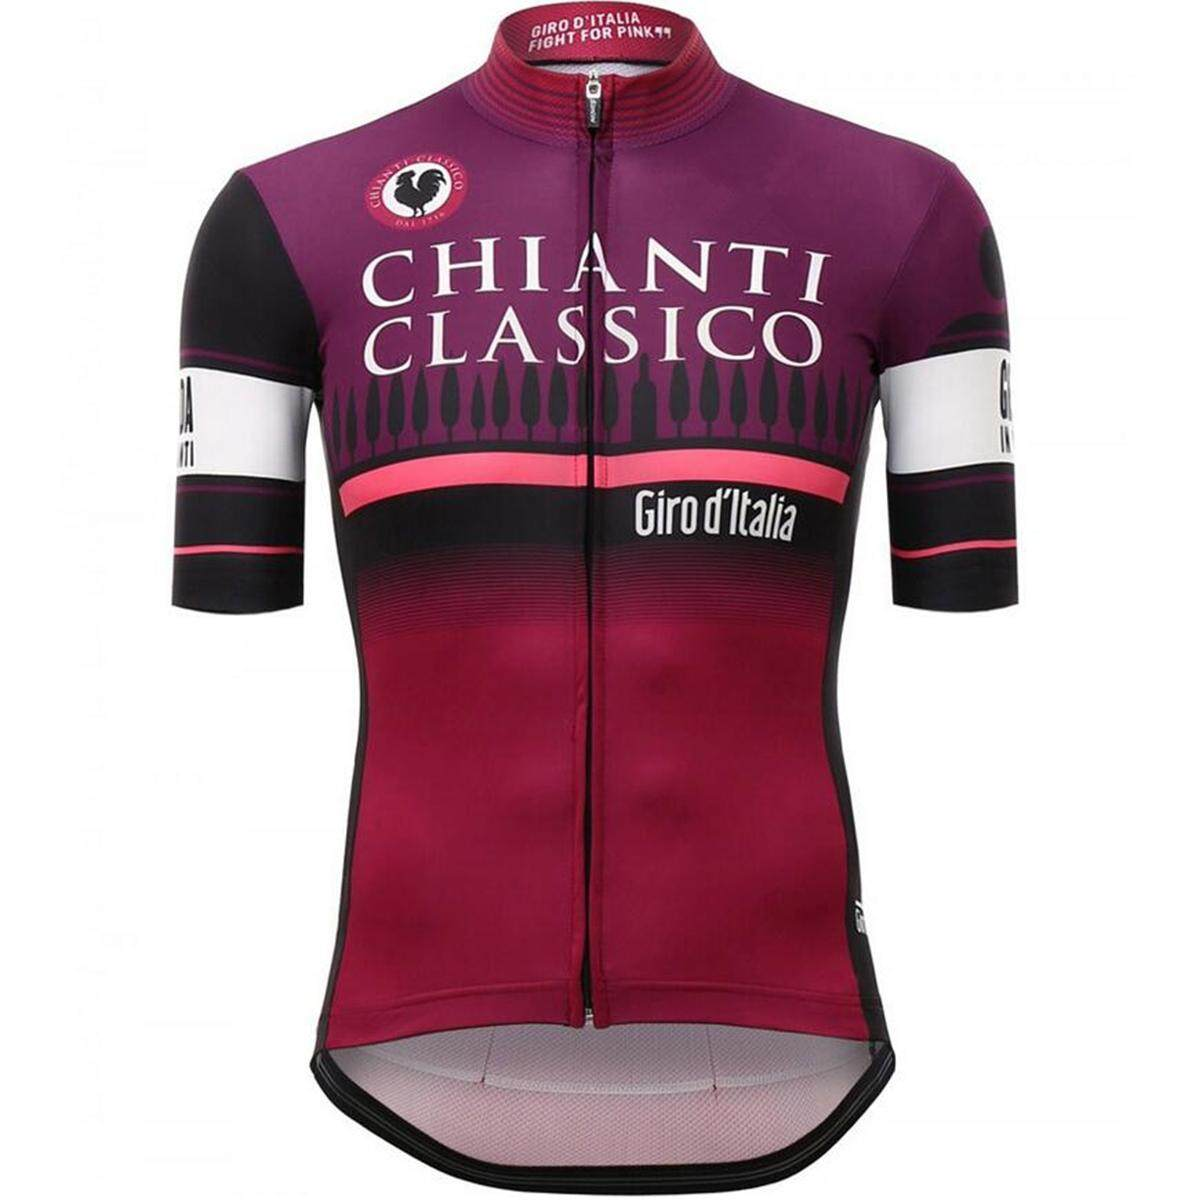 Italy Summer Short Sleeves D'ITALIA Team Cycling Jersey Quick Dry Pro Bike Wear Breathable